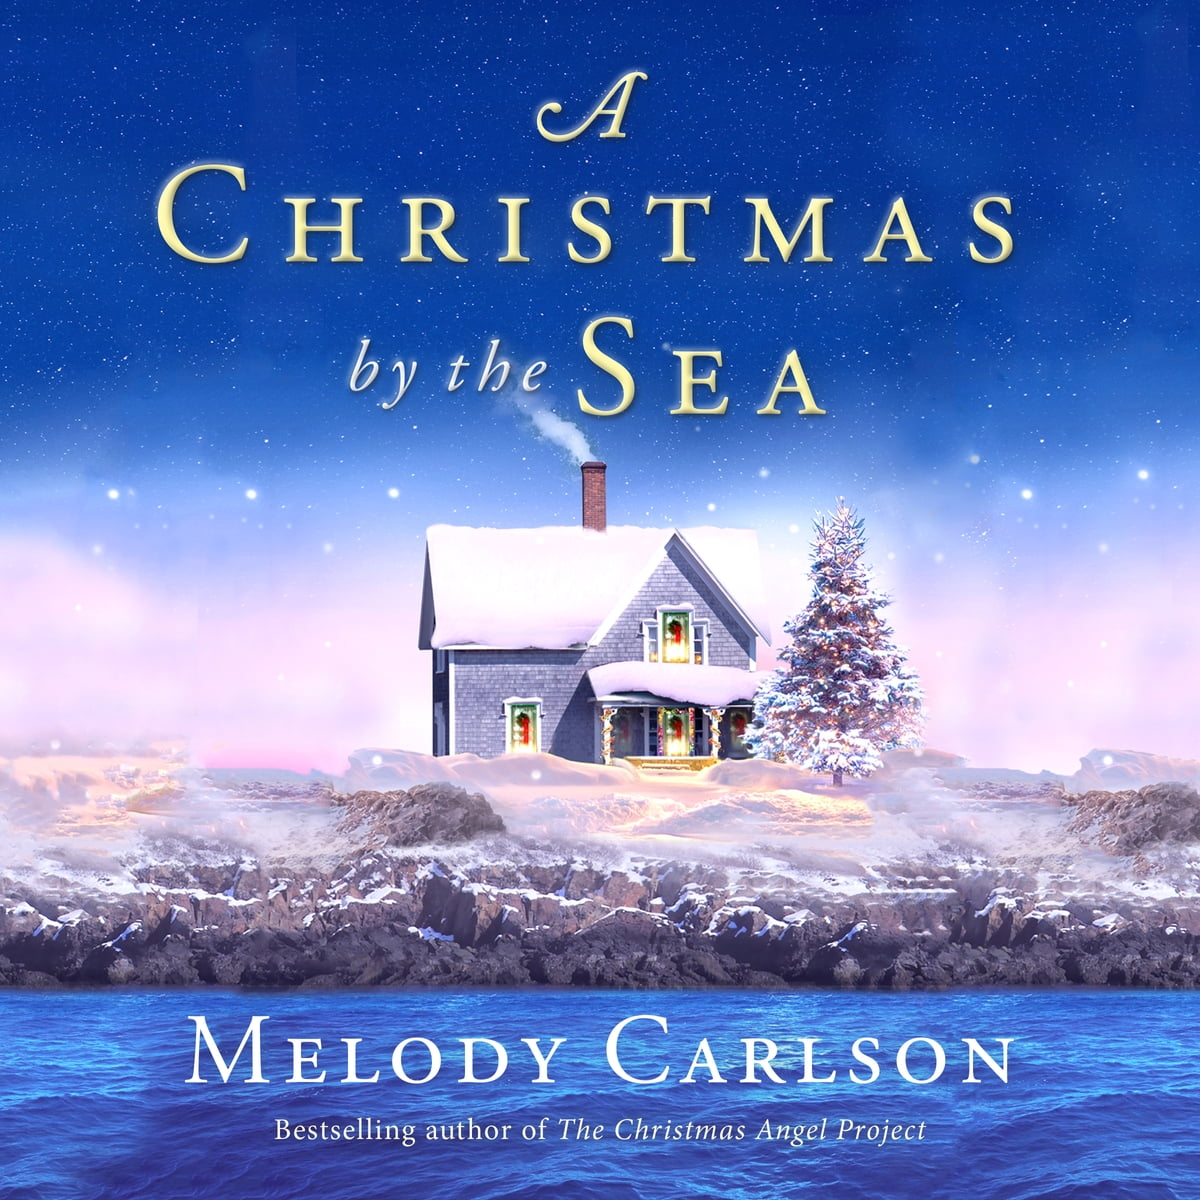 A Christmas by the Sea Audiobook by Melody Carlson - 9781974927517 |  Rakuten Kobo